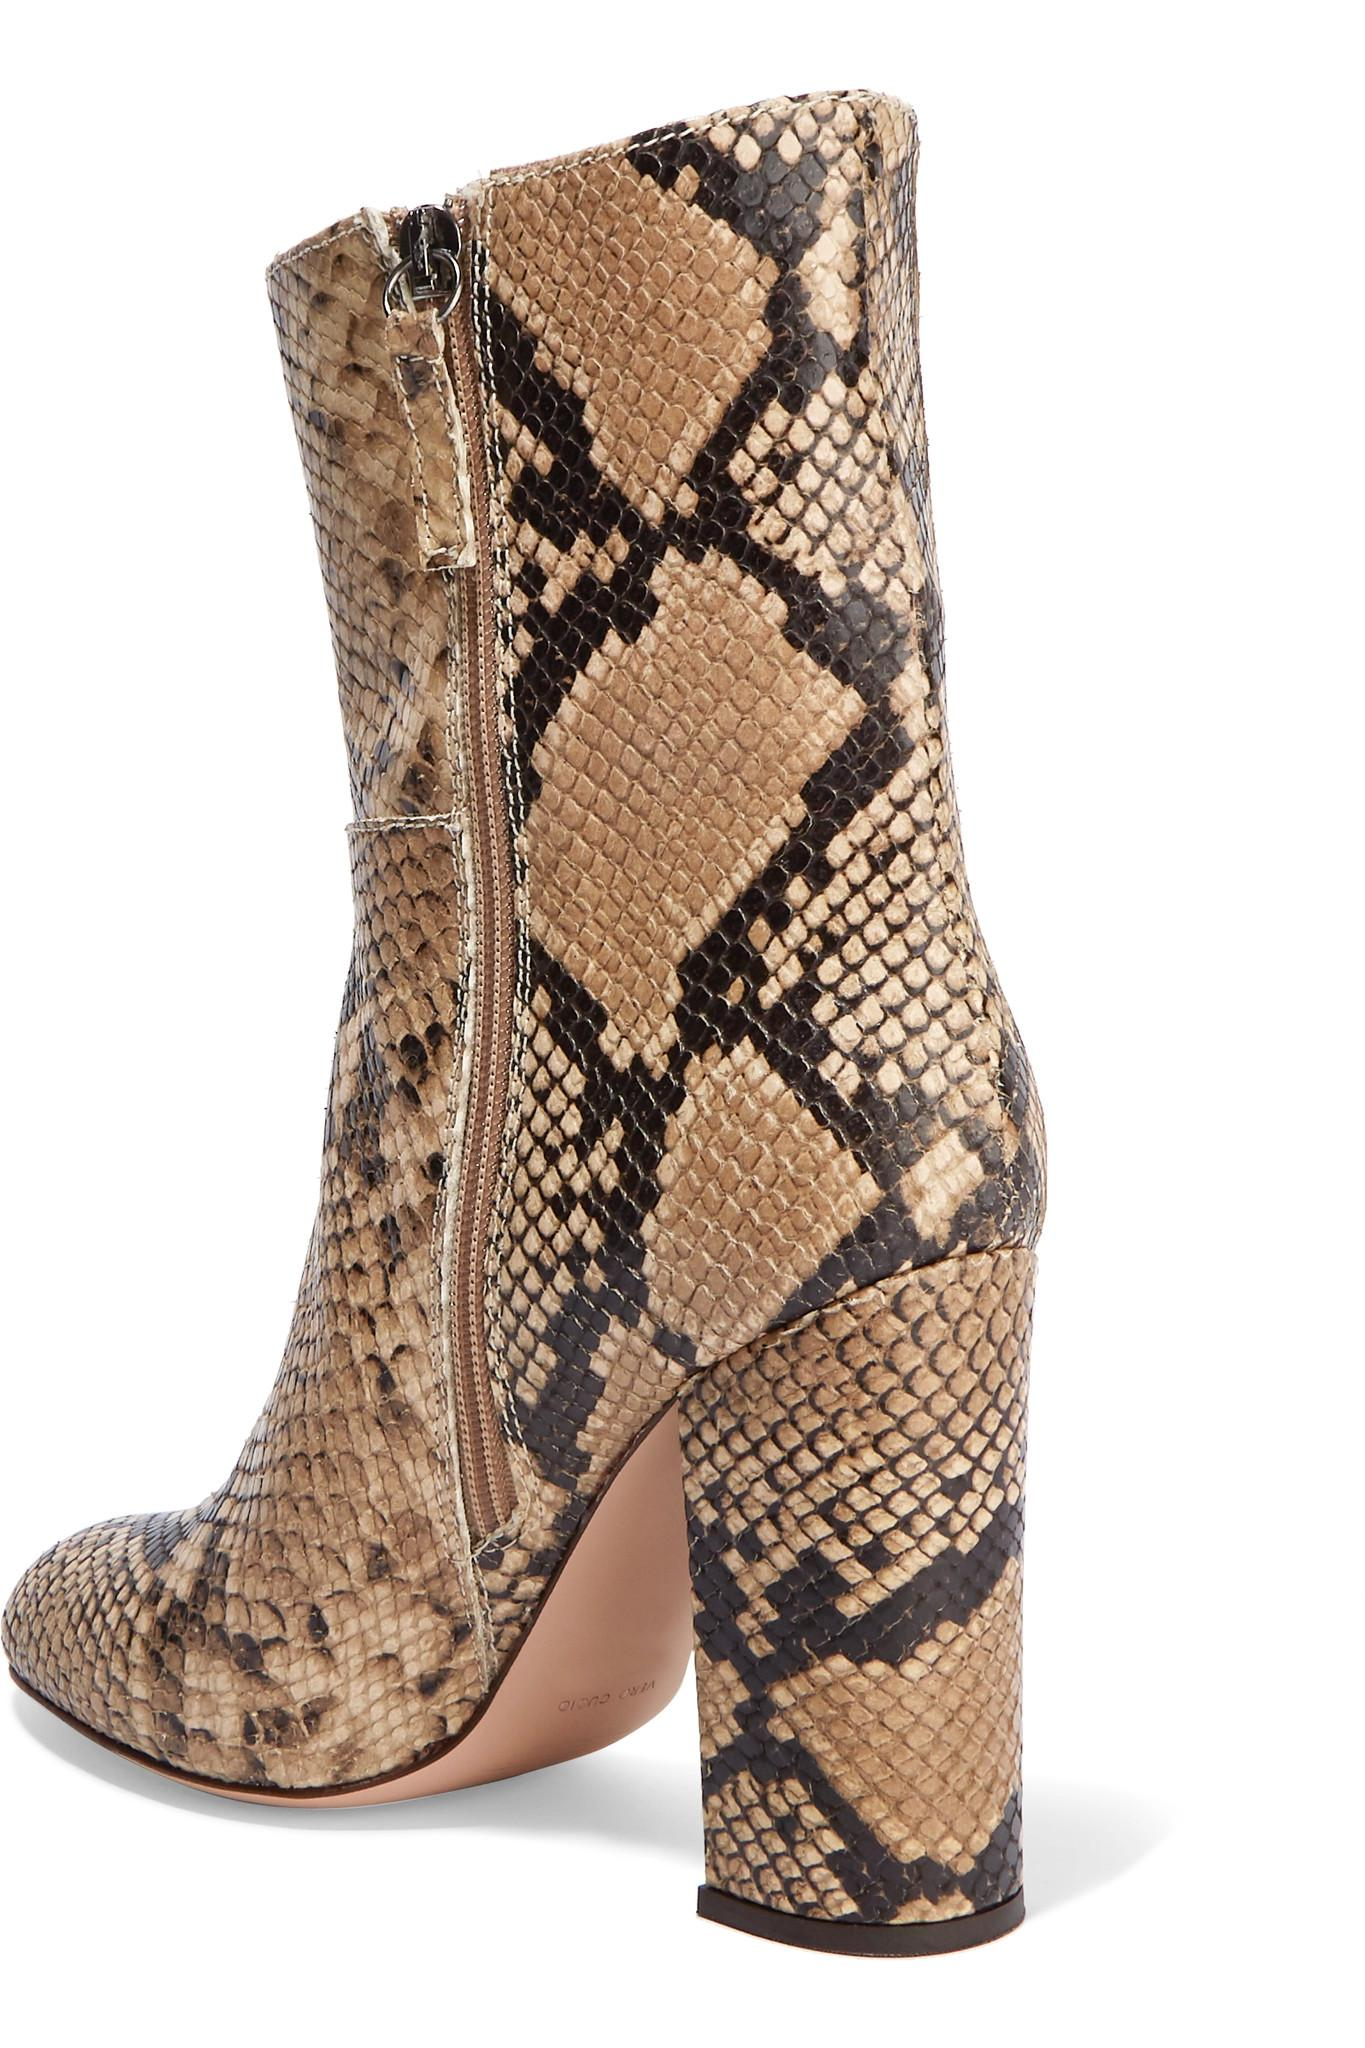 Iris Amp Ink Snake Effect Leather Boots Lyst